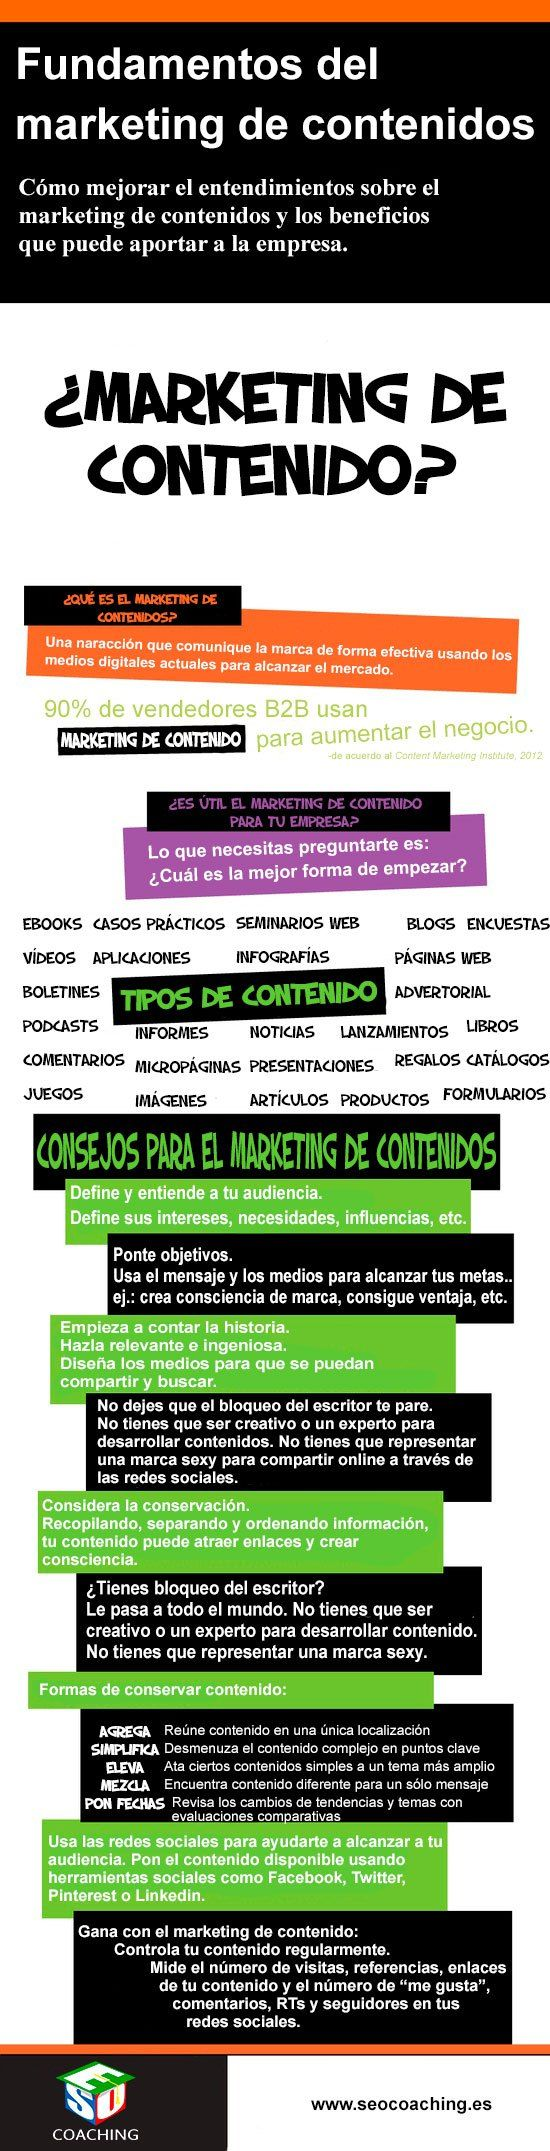 Fundamentos marketing de contenidos